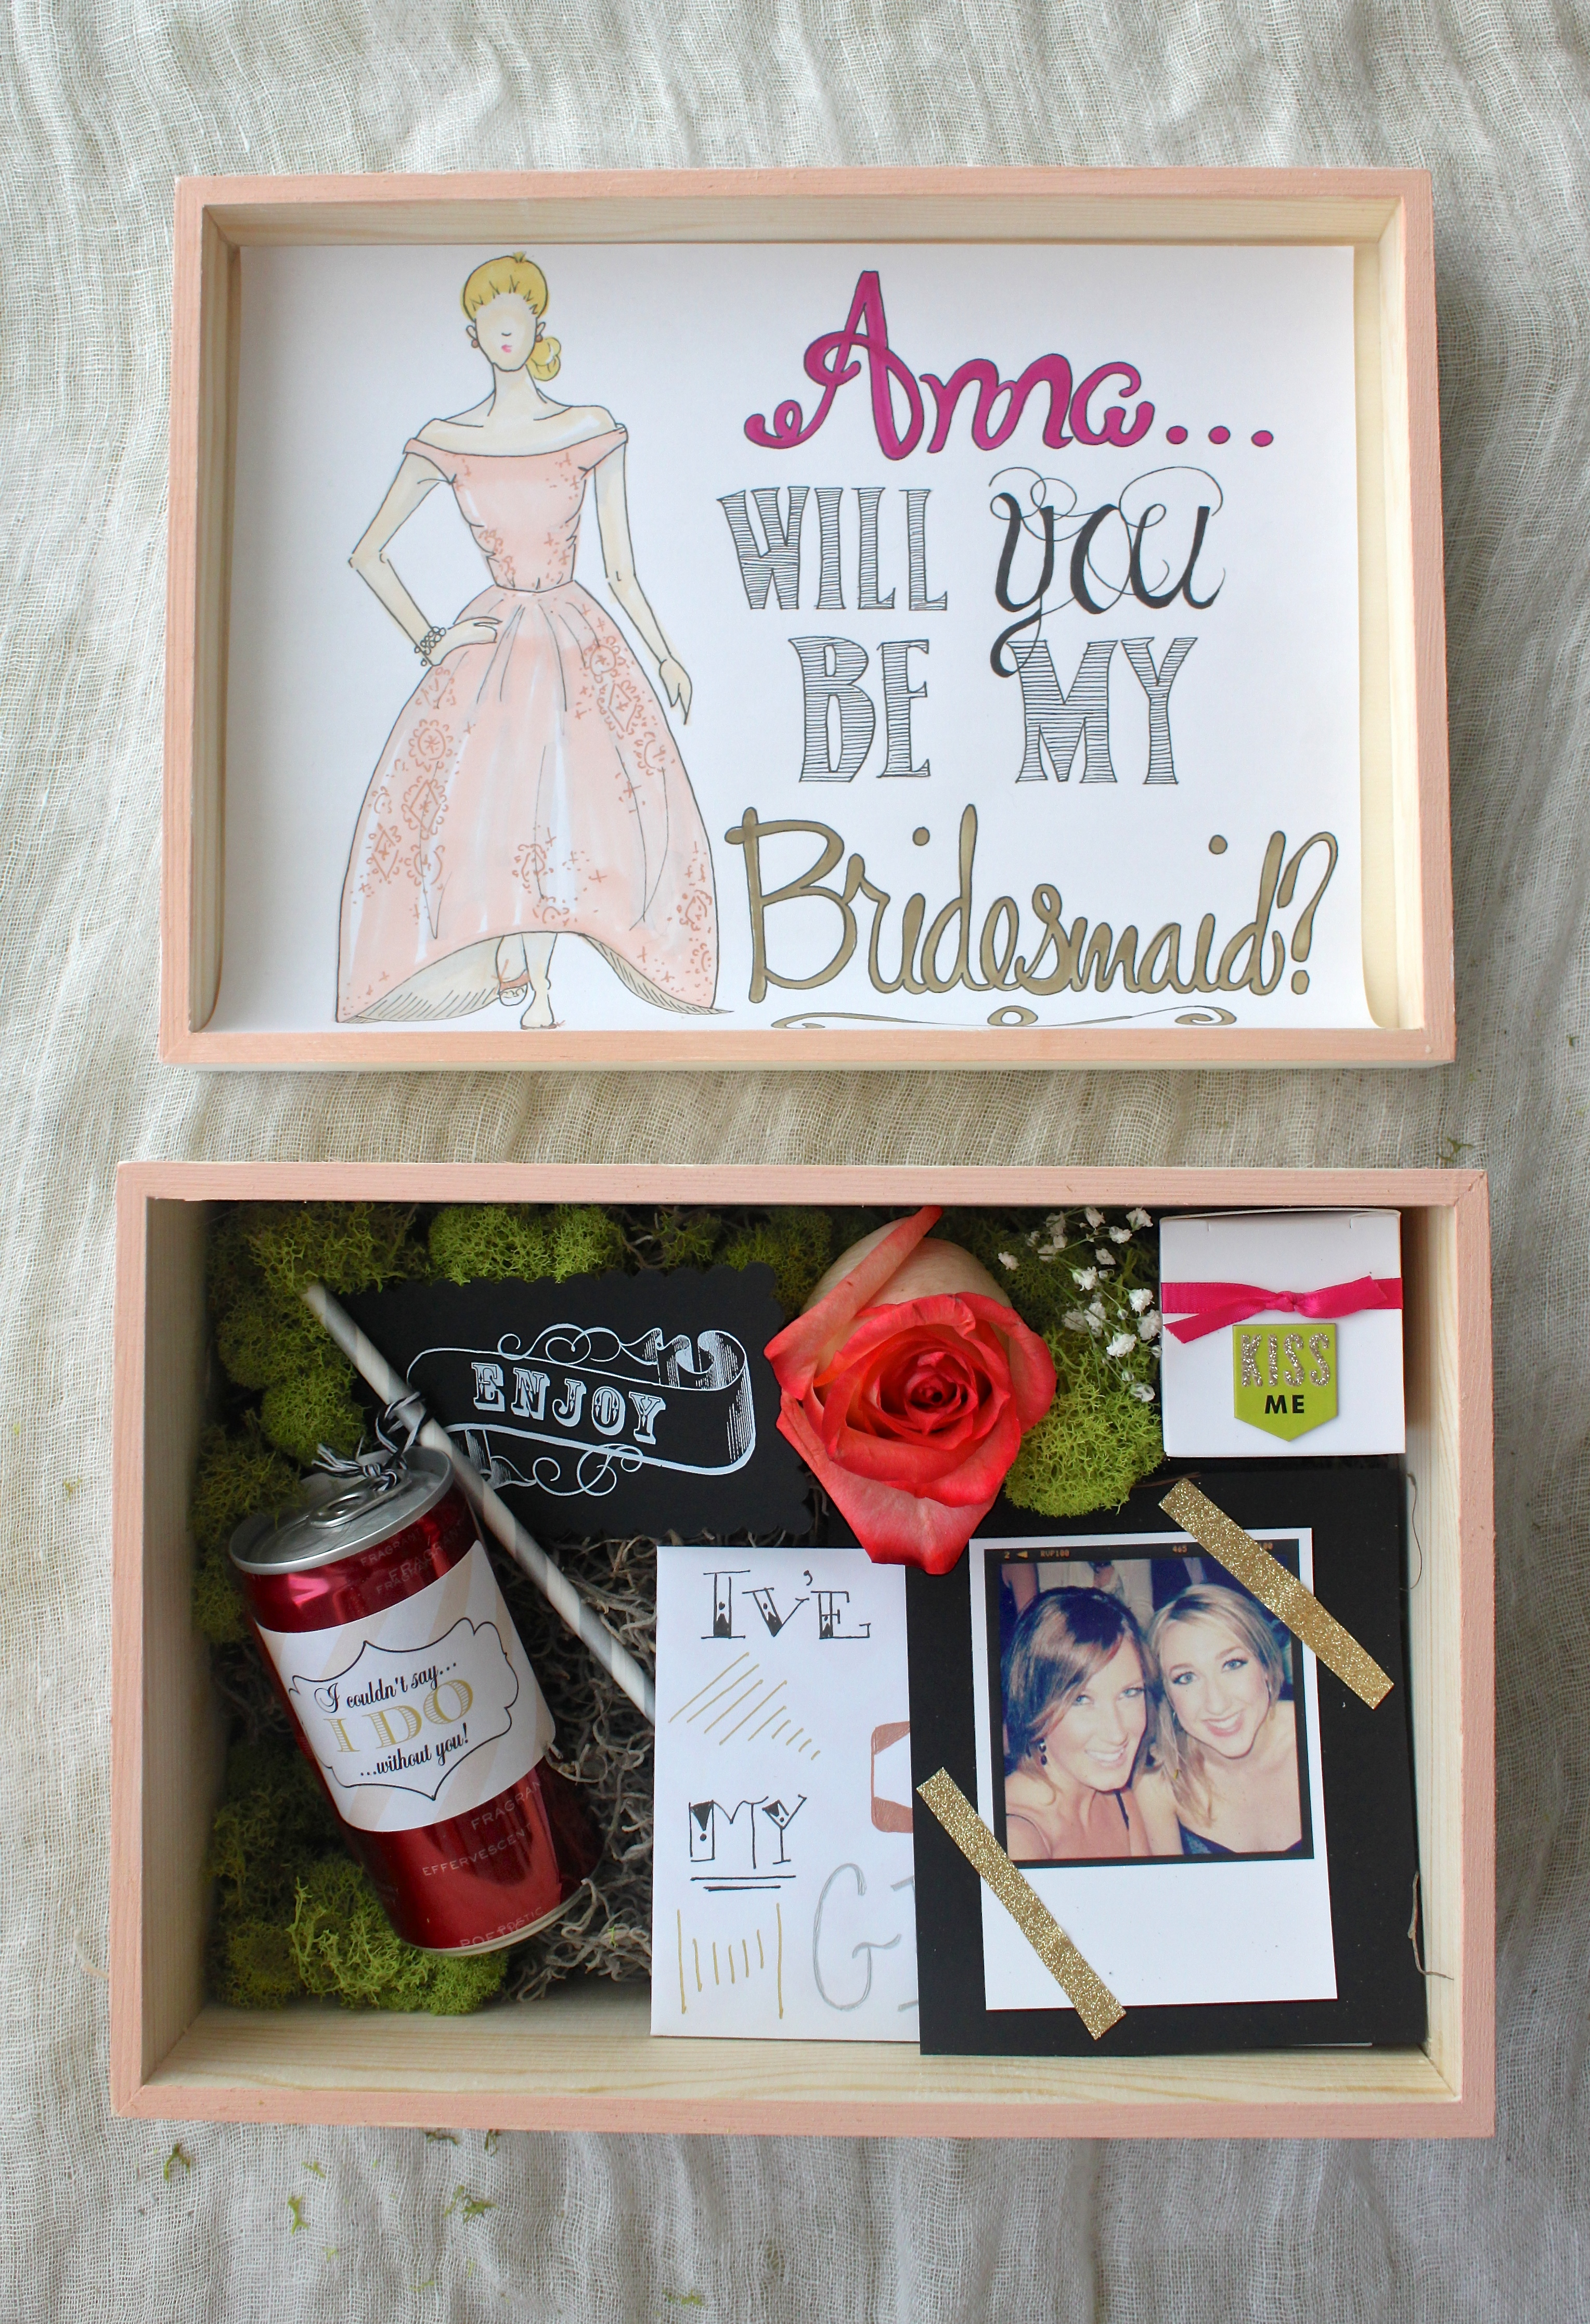 Michaels crafts wedding invitations - 12181145715_e279353e78_o